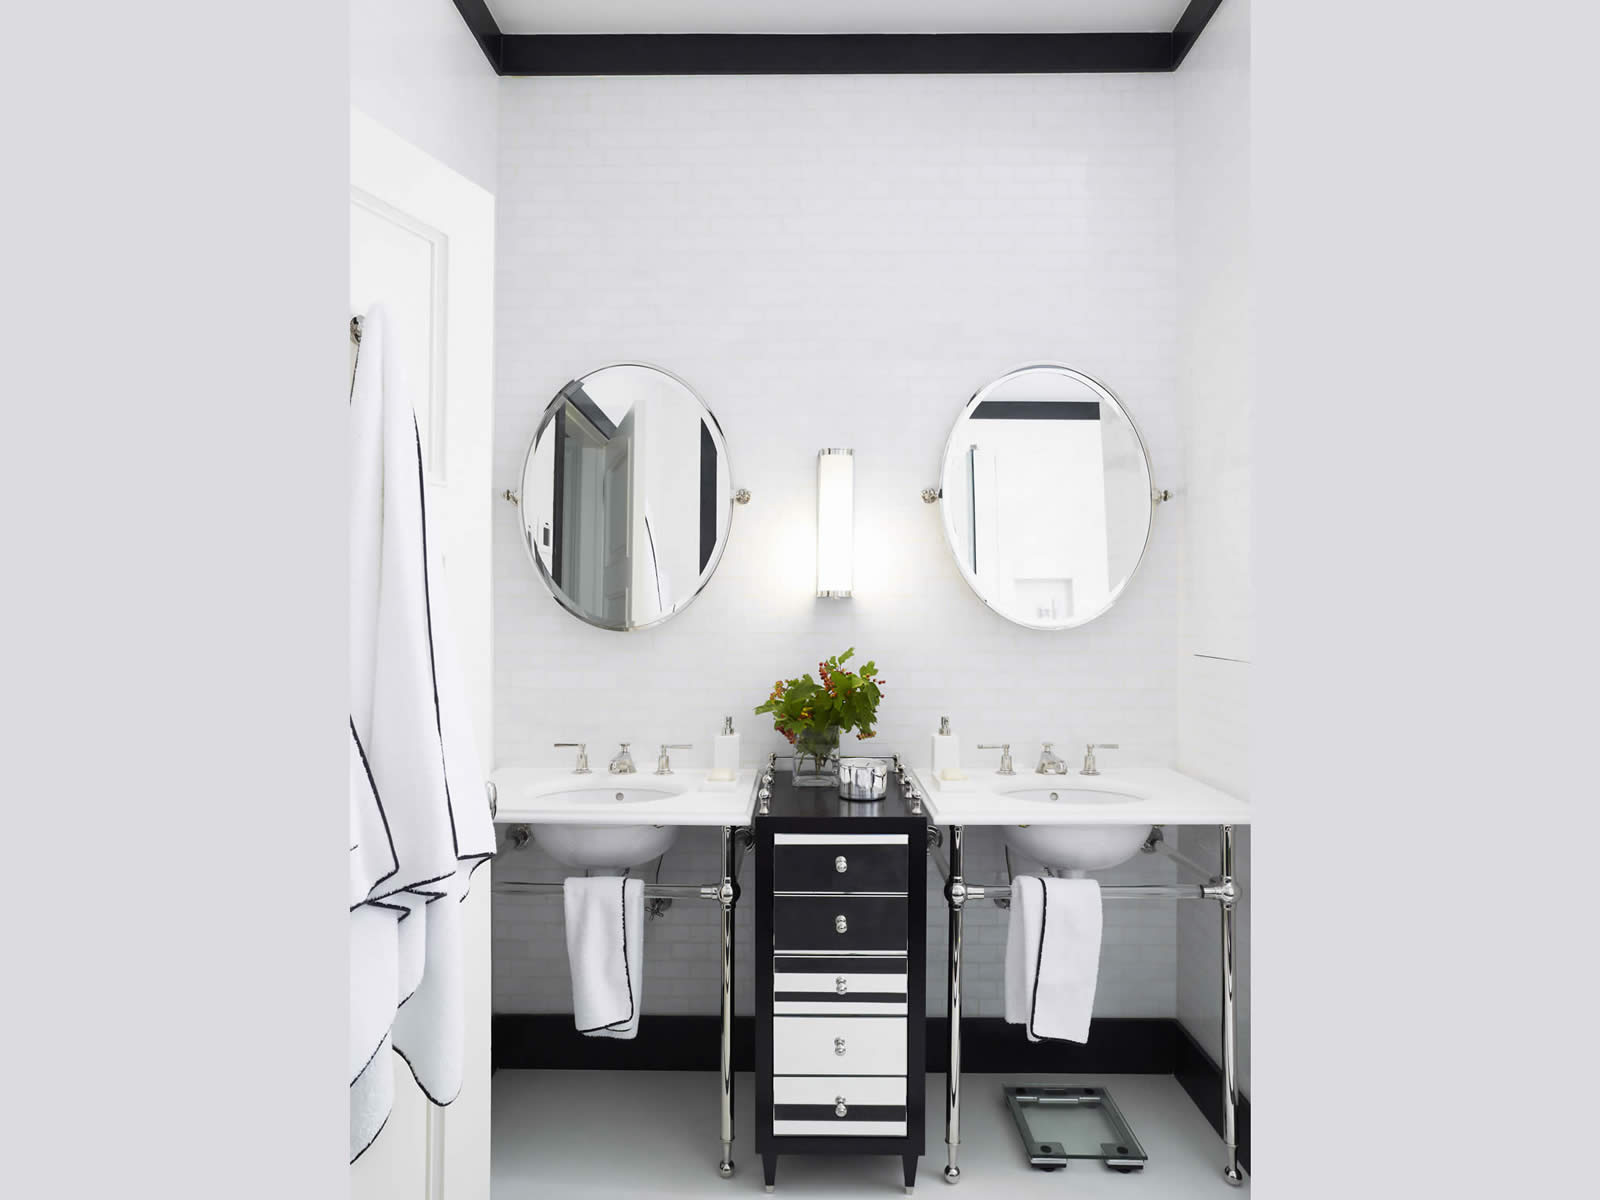 Cococozy bathroom mirrors looking good - Pictures of bathroom mirrors ...